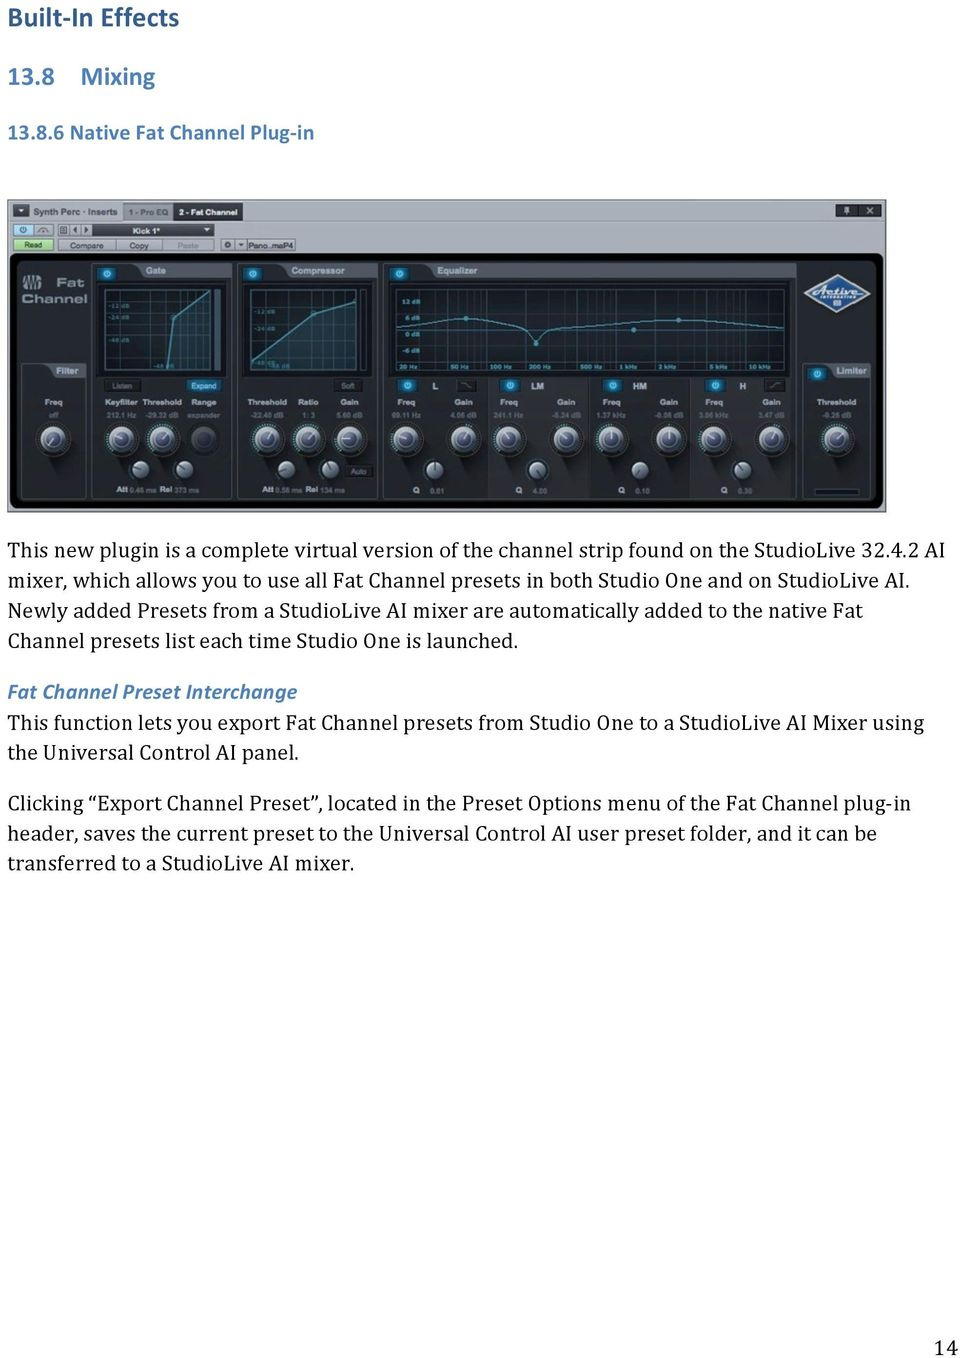 Newly added Presets from a StudioLive AI mixer are automatically added to the native Fat Channel presets list each time Studio One is launched.